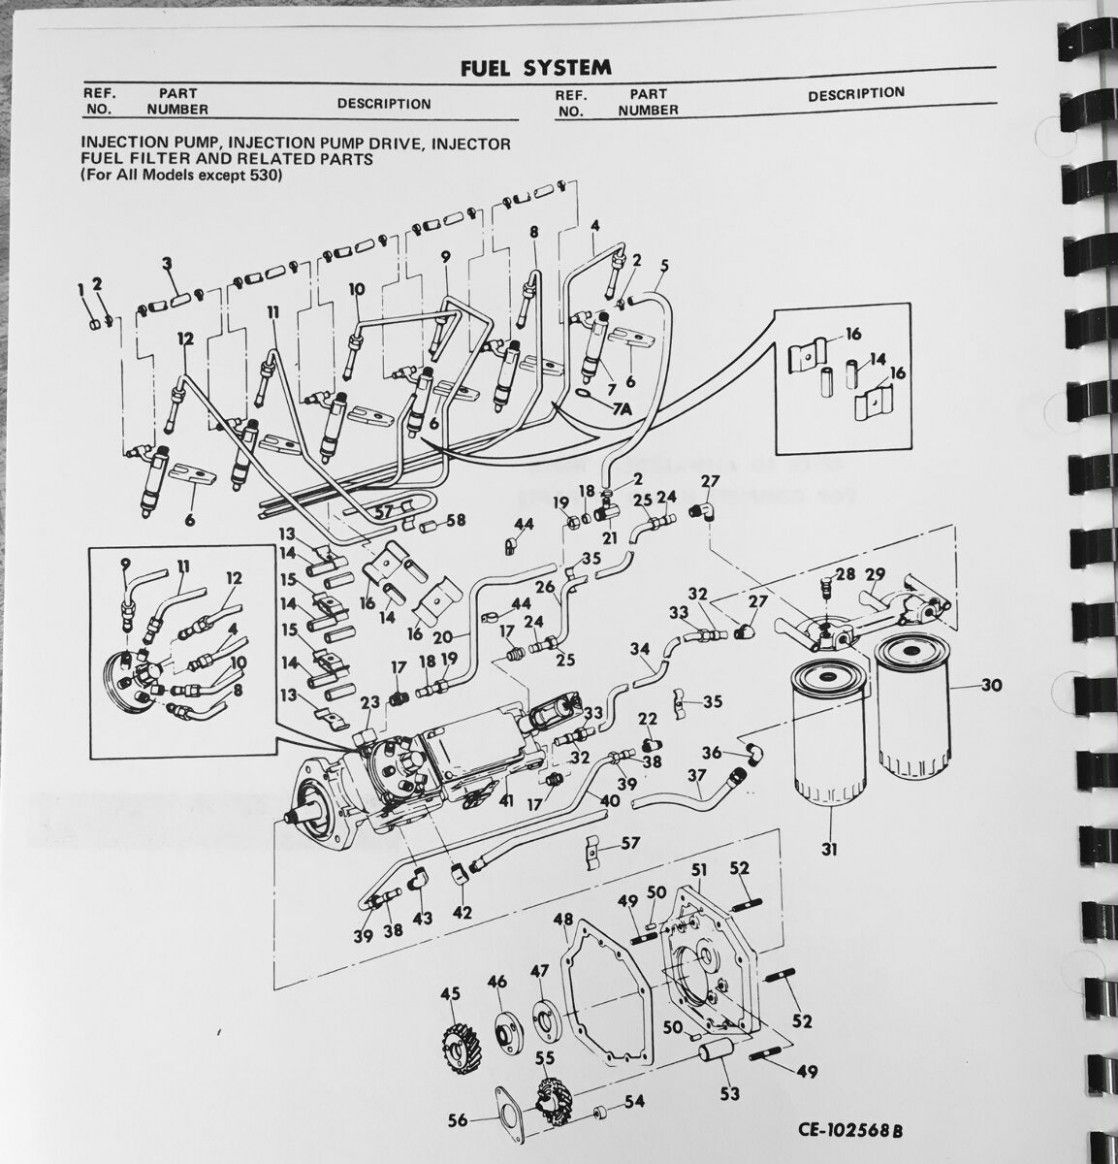 [DIAGRAM_38YU]  Dt6 Engine Diagram List in 2020 | Diagram, Engineering, Wire | International Dt 466 Engines Diagrams |  | Pinterest